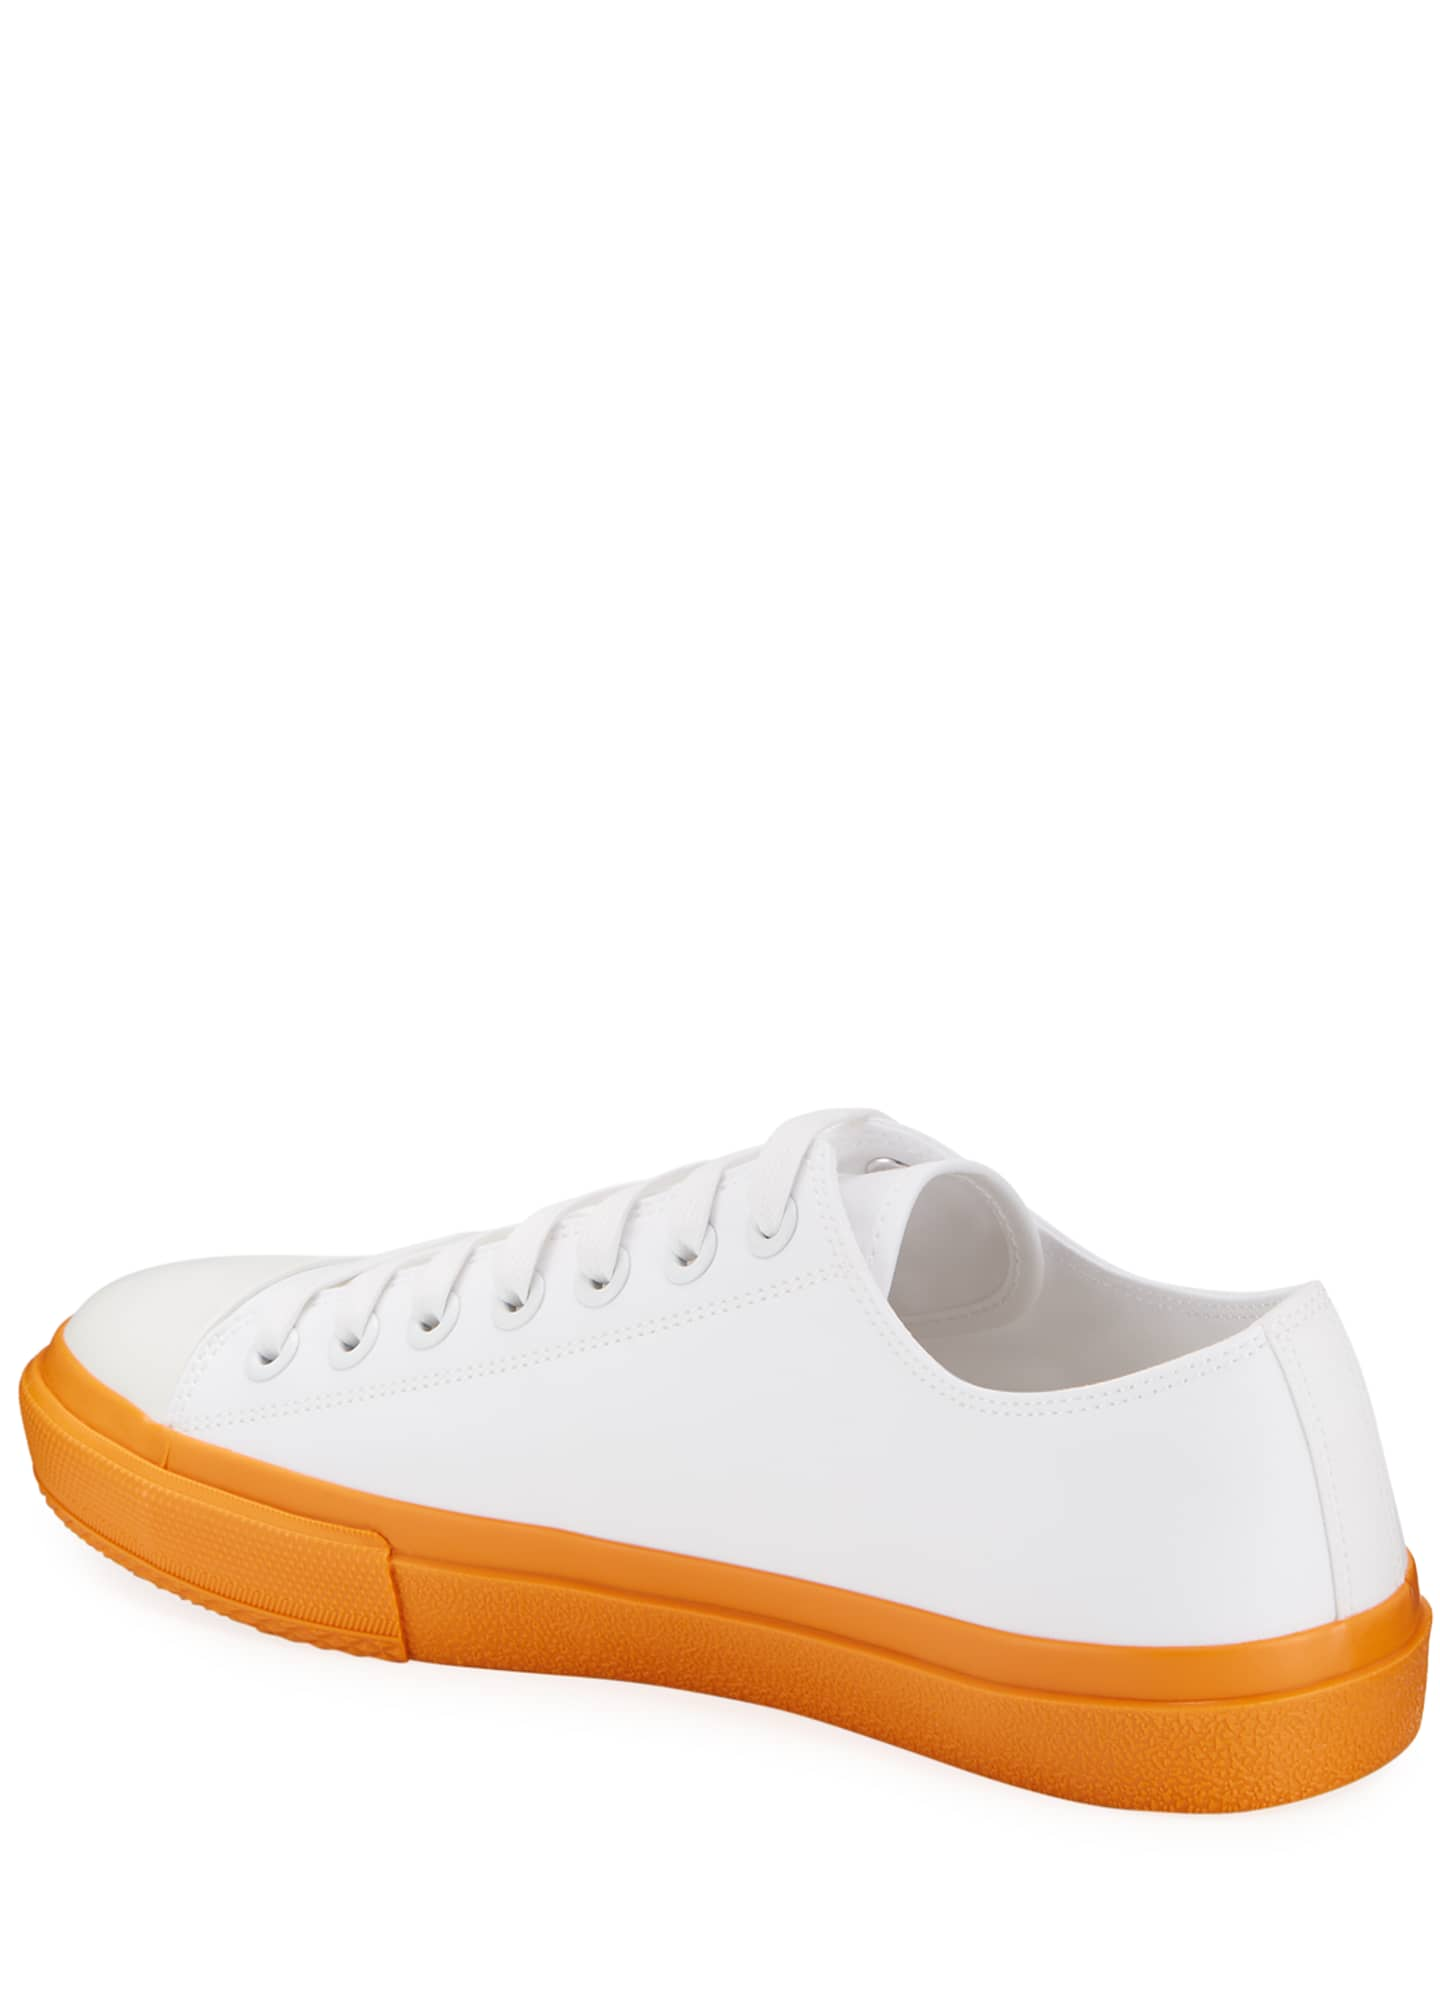 Image 4 of 4: Men's Larkhall Two-Tone Canvas Logo Sneakers